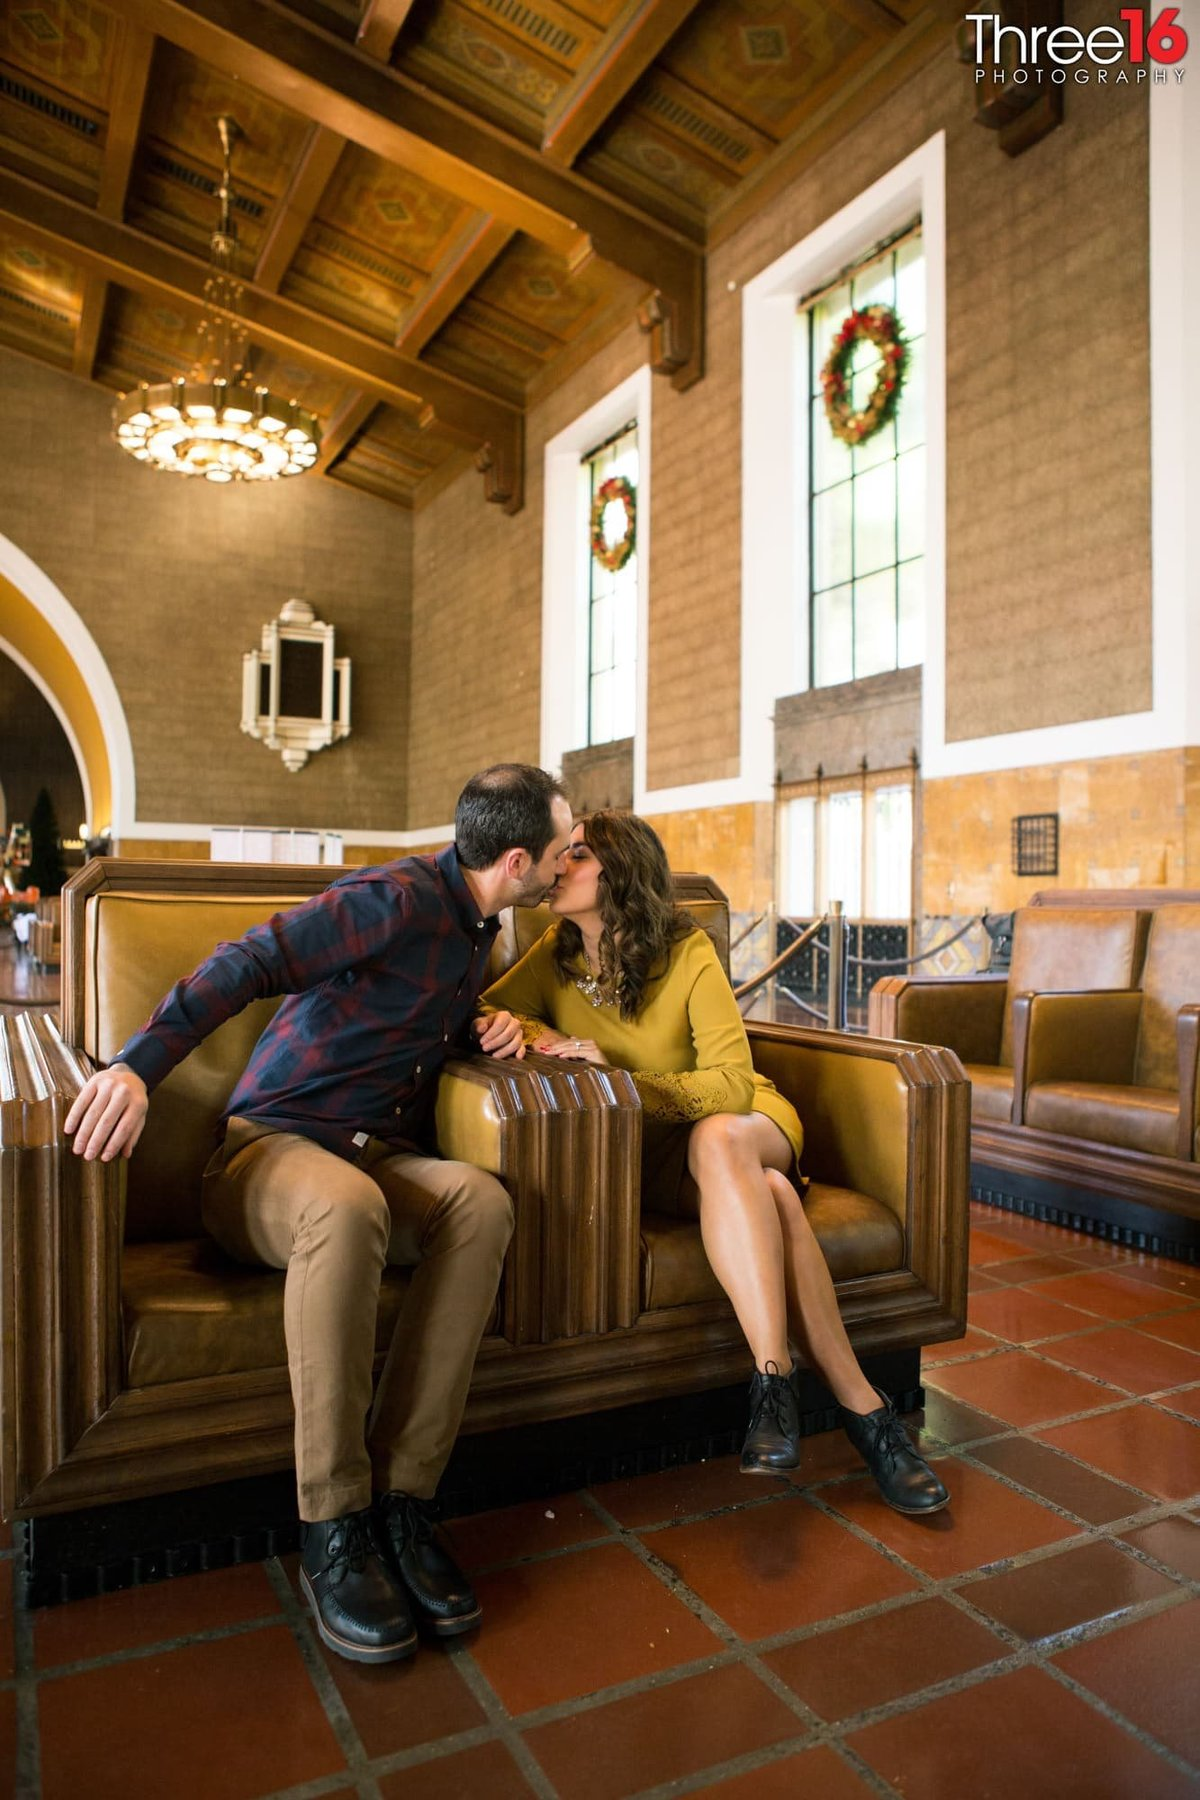 Los Angeles Union Station Engagement Photos LA County Wedding Professional Photography Urban Unique